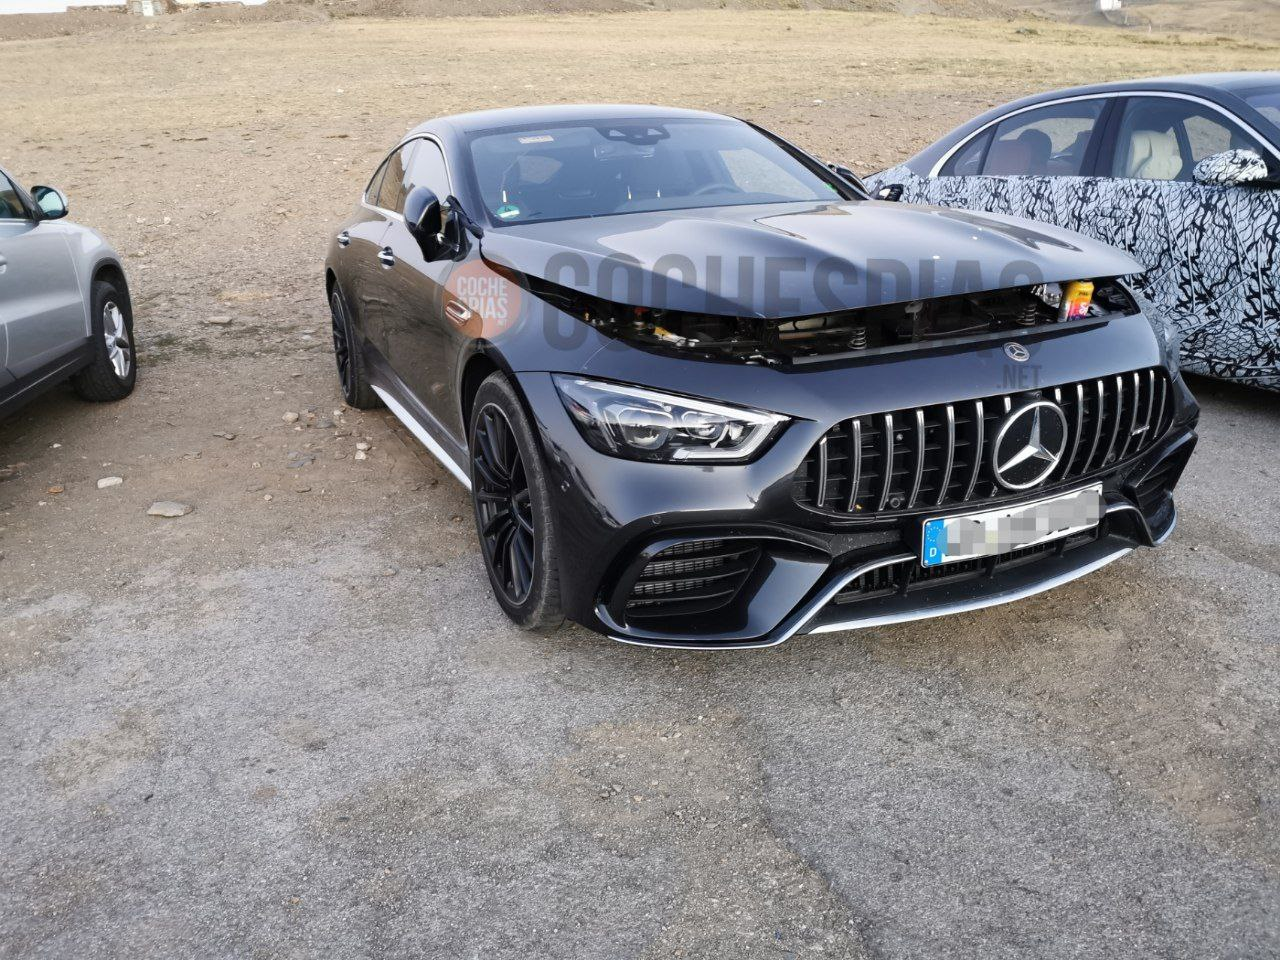 2017 - [Mercedes-AMG] GT4 - Page 7 Photo527